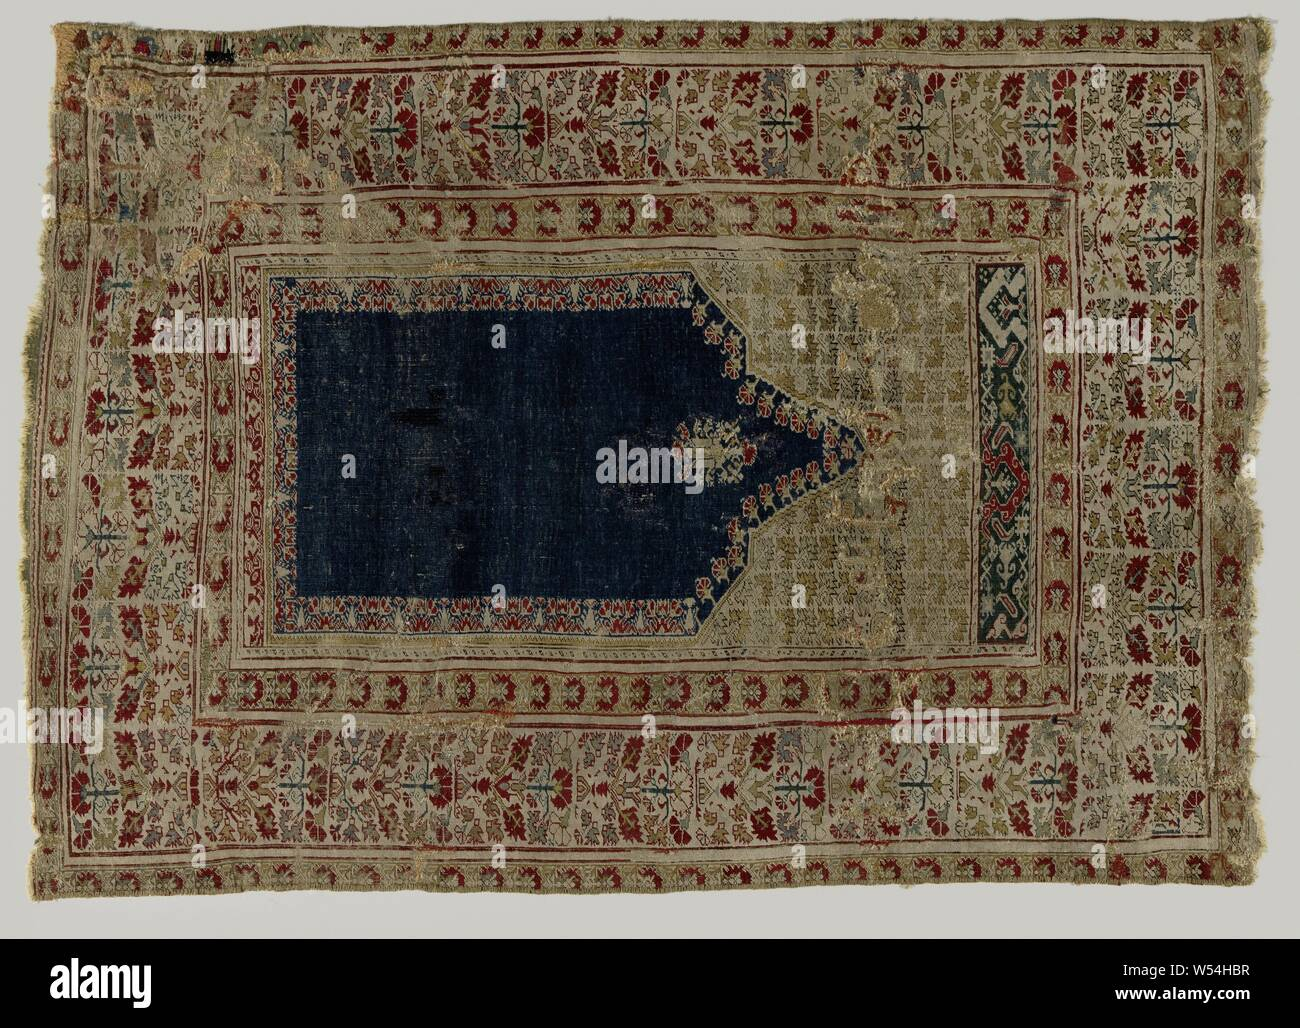 Oriental Carpet Prayer Rug Made Of Knotted Wool Decorated With A Corn Blue Mihrab Pointed And Toothed Top In Which A Stylized Lamp Hangs Beige Sprays With Plant Leaves Around The Midfield Three